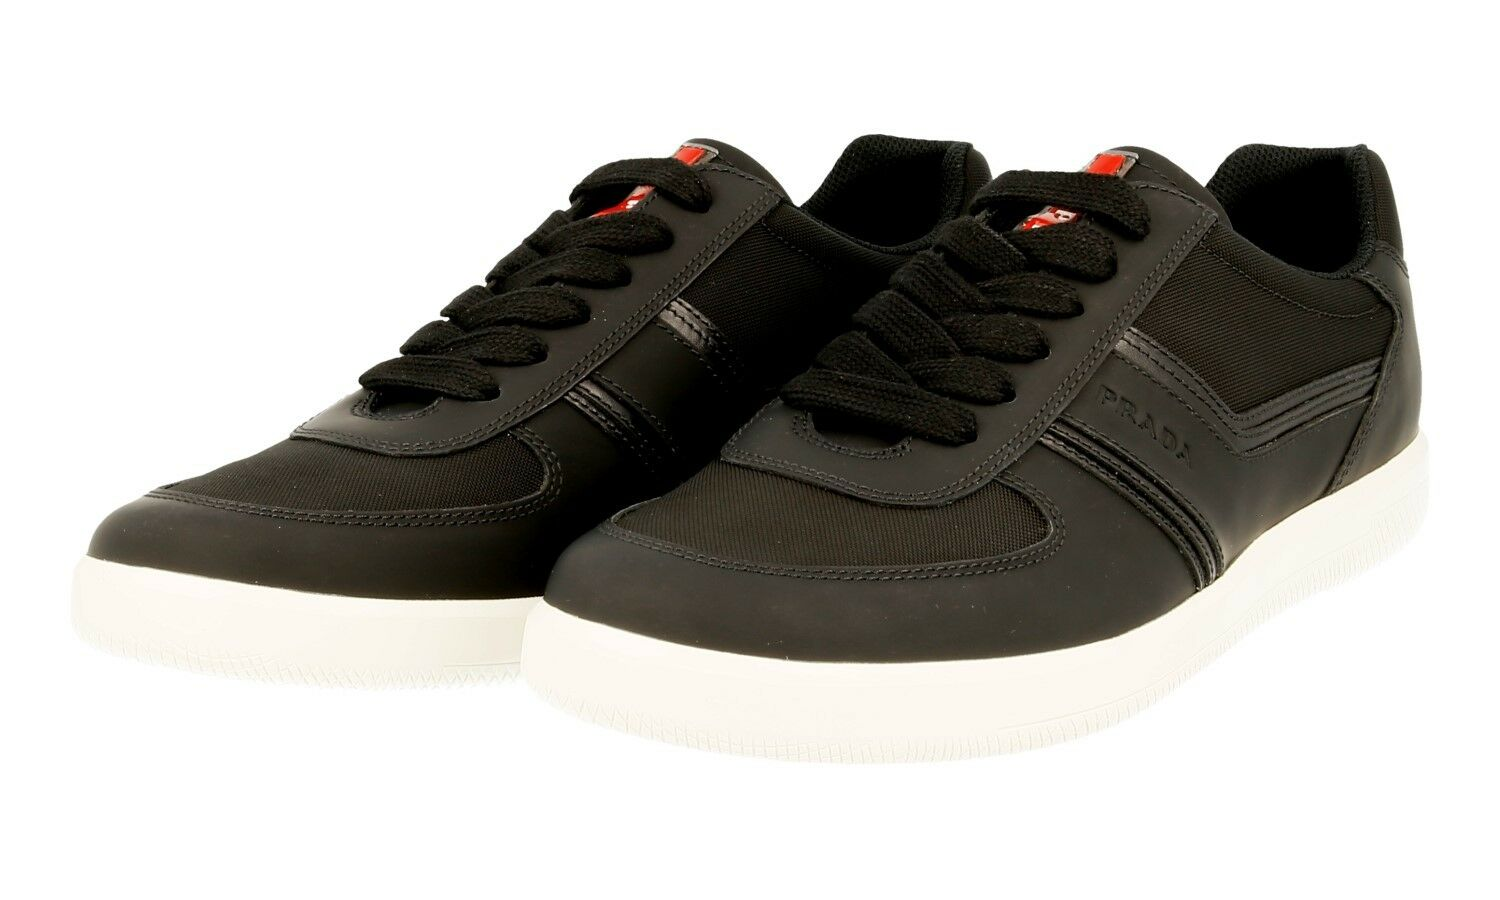 AUTHENTIC LUXURY PRADA SNEAKERS SHOES 4E3026 BLACK NEW US 12